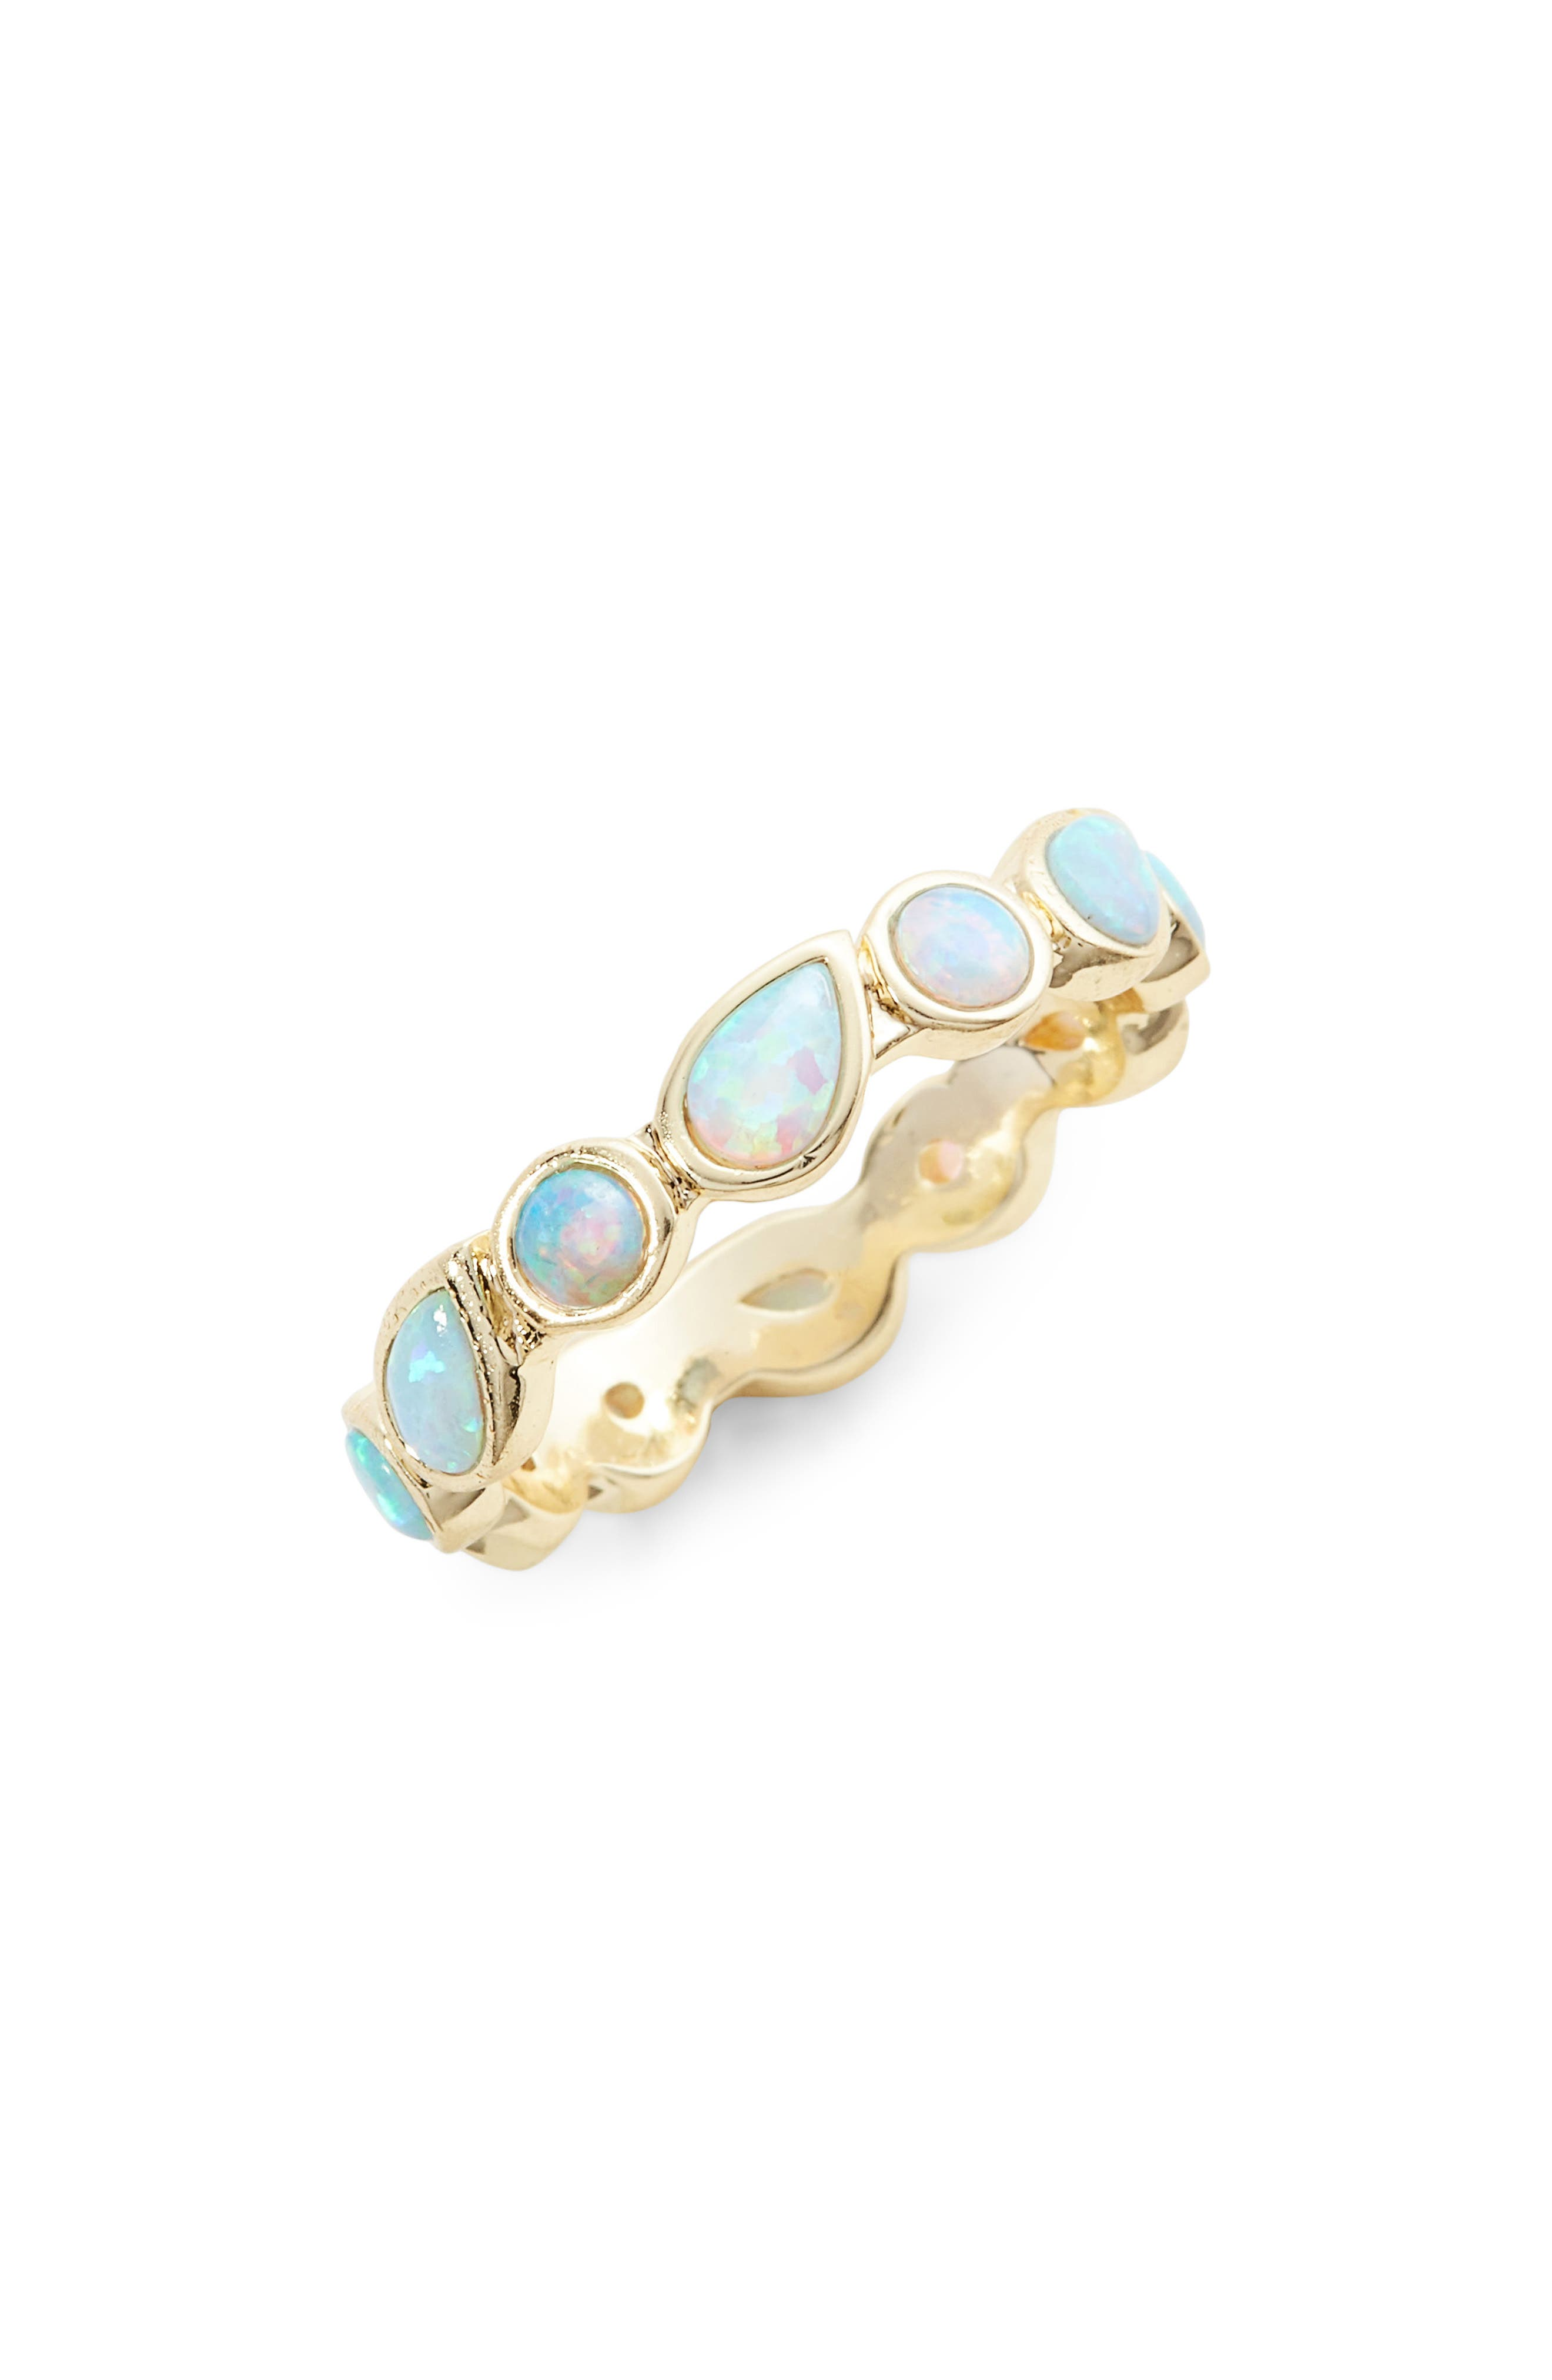 Isla Opal Ring,                             Main thumbnail 1, color,                             400